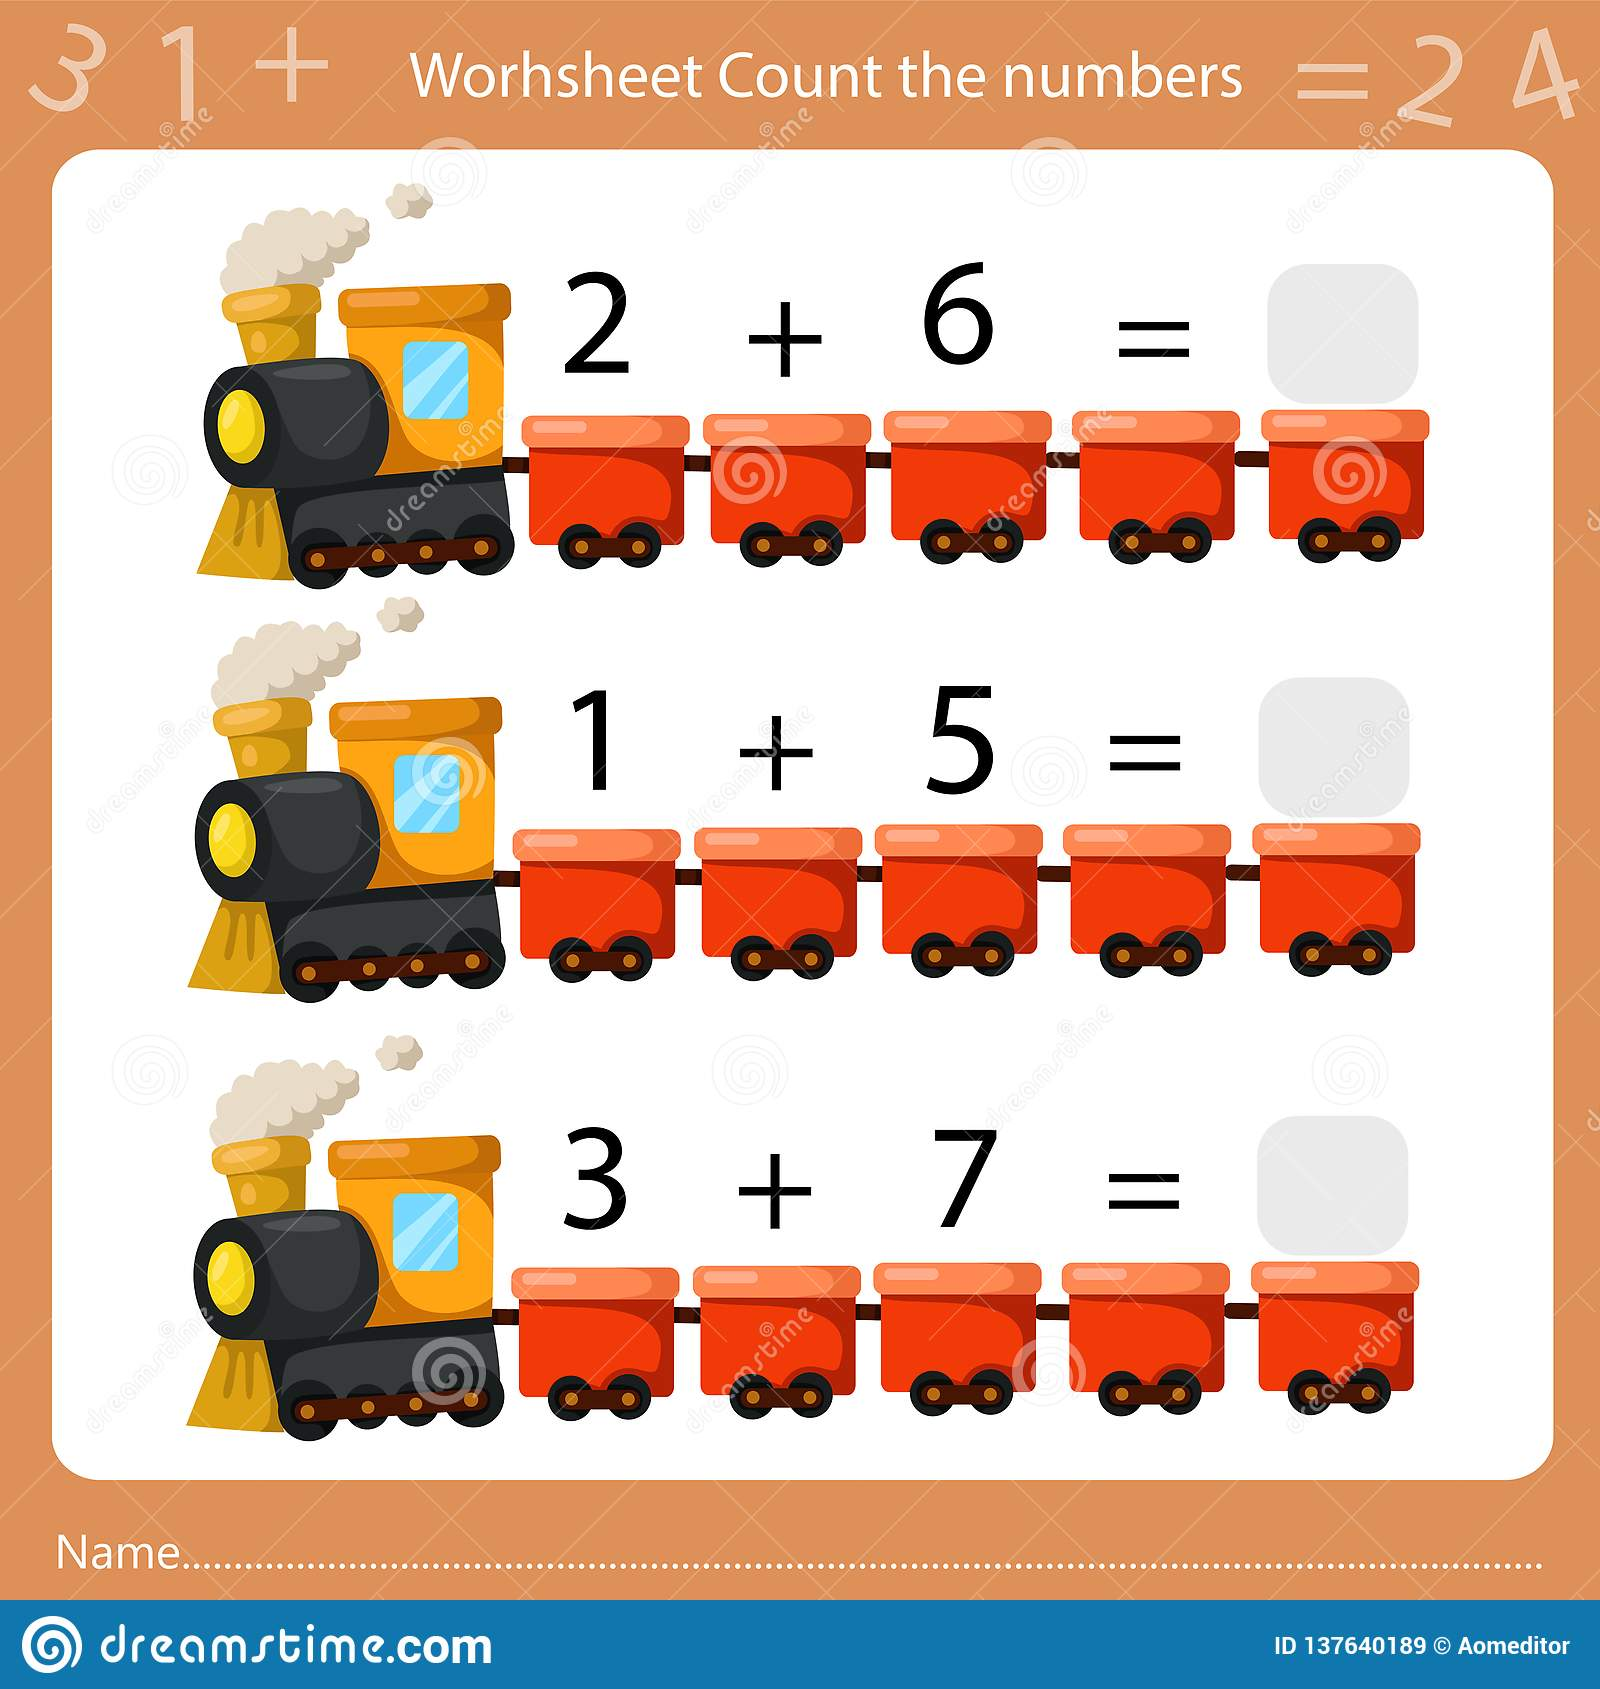 Illustrator Of Worksheet Count The Number Sheet Two Stock